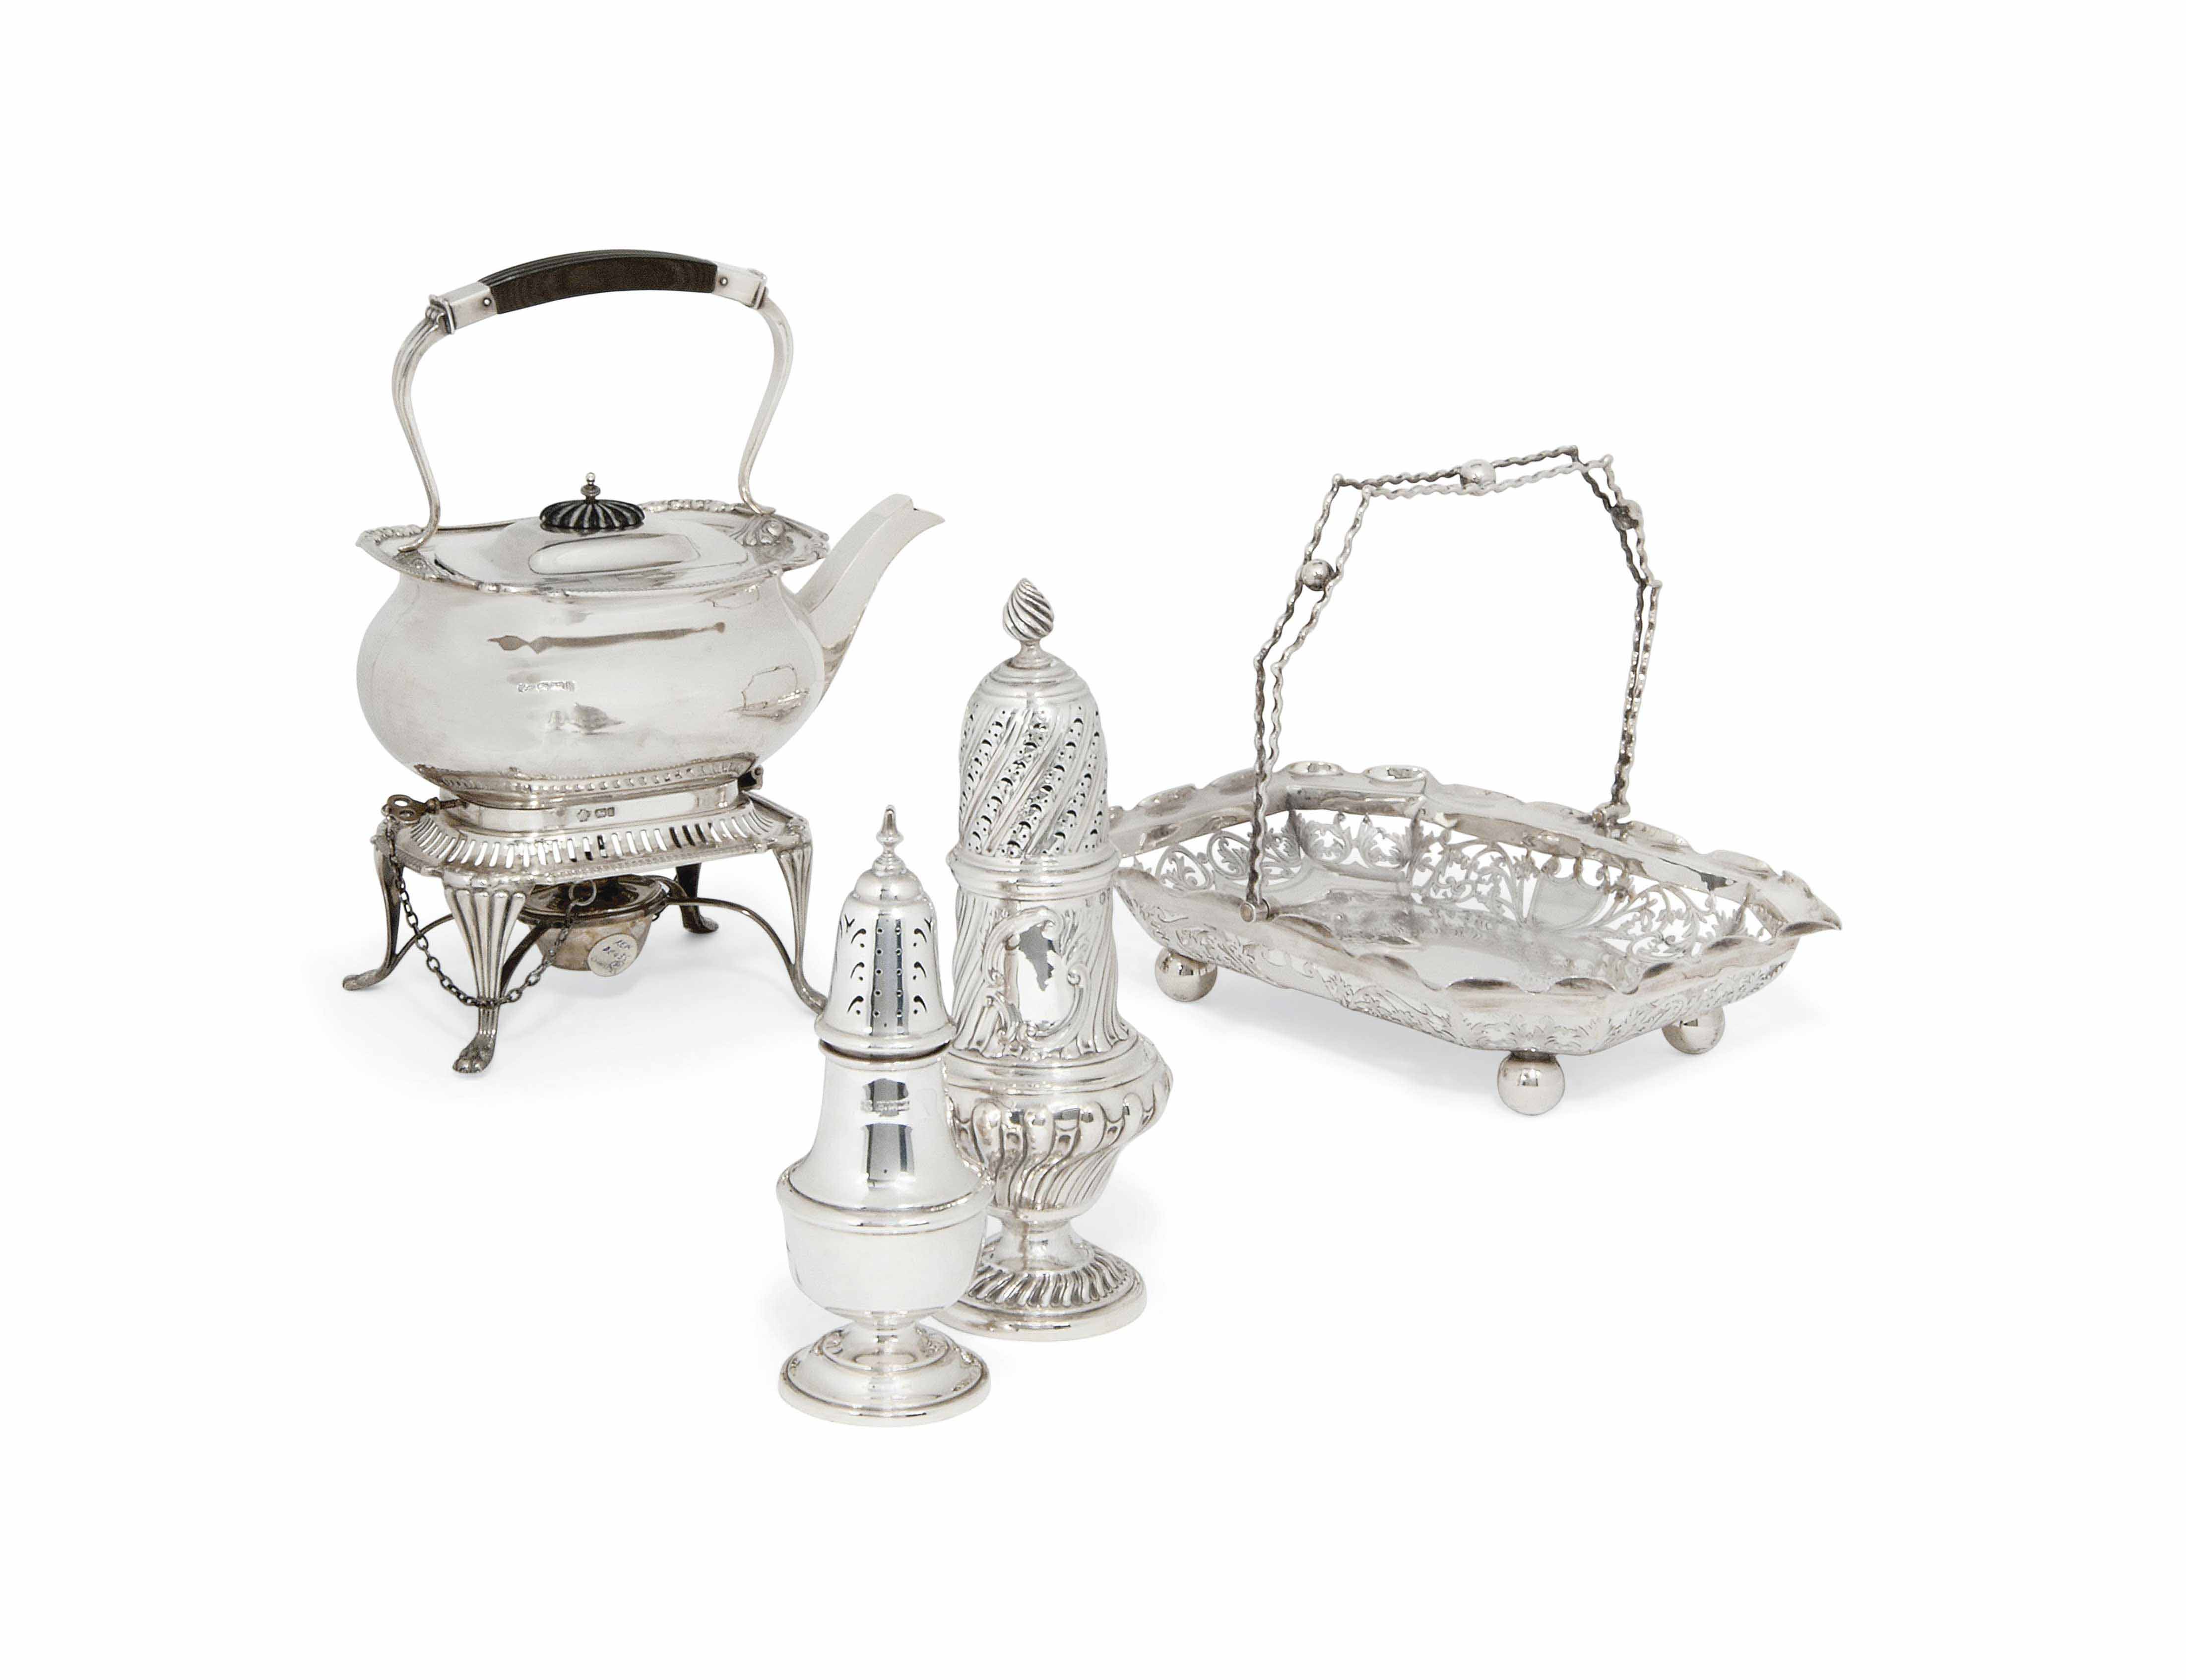 AN EDWARDIAN SILVER KETTLE ON STAND